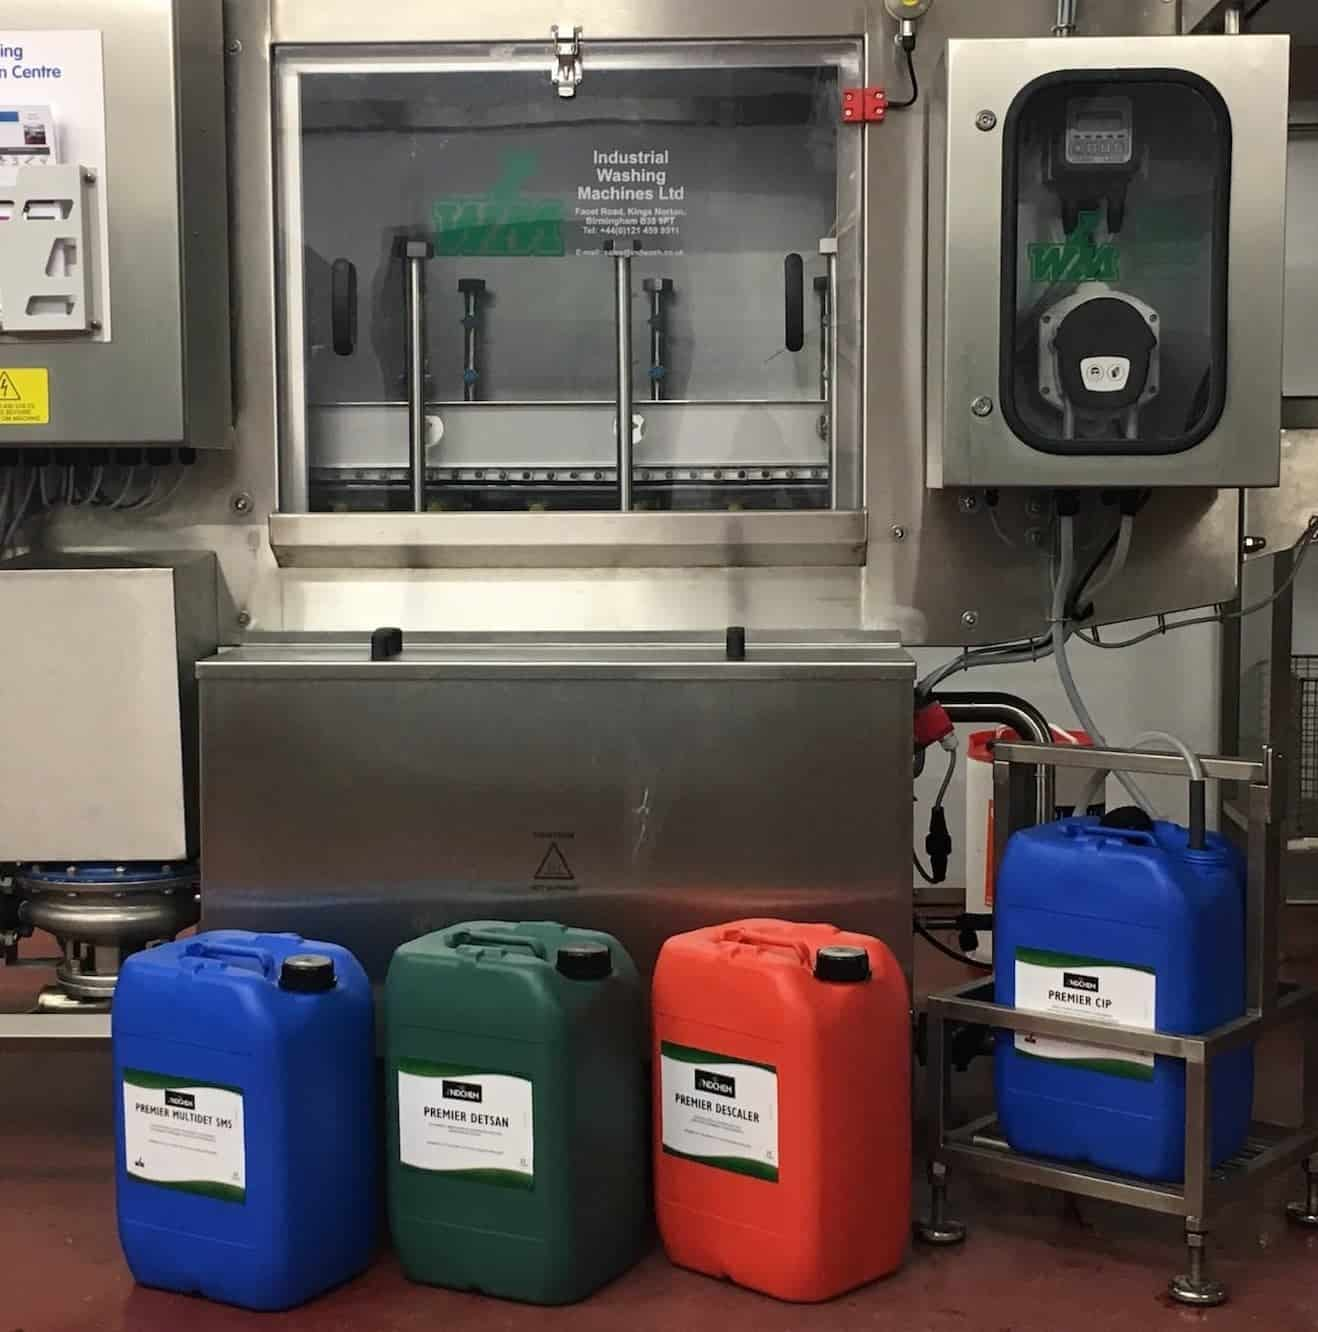 New range of washing chemicals launched by IWM